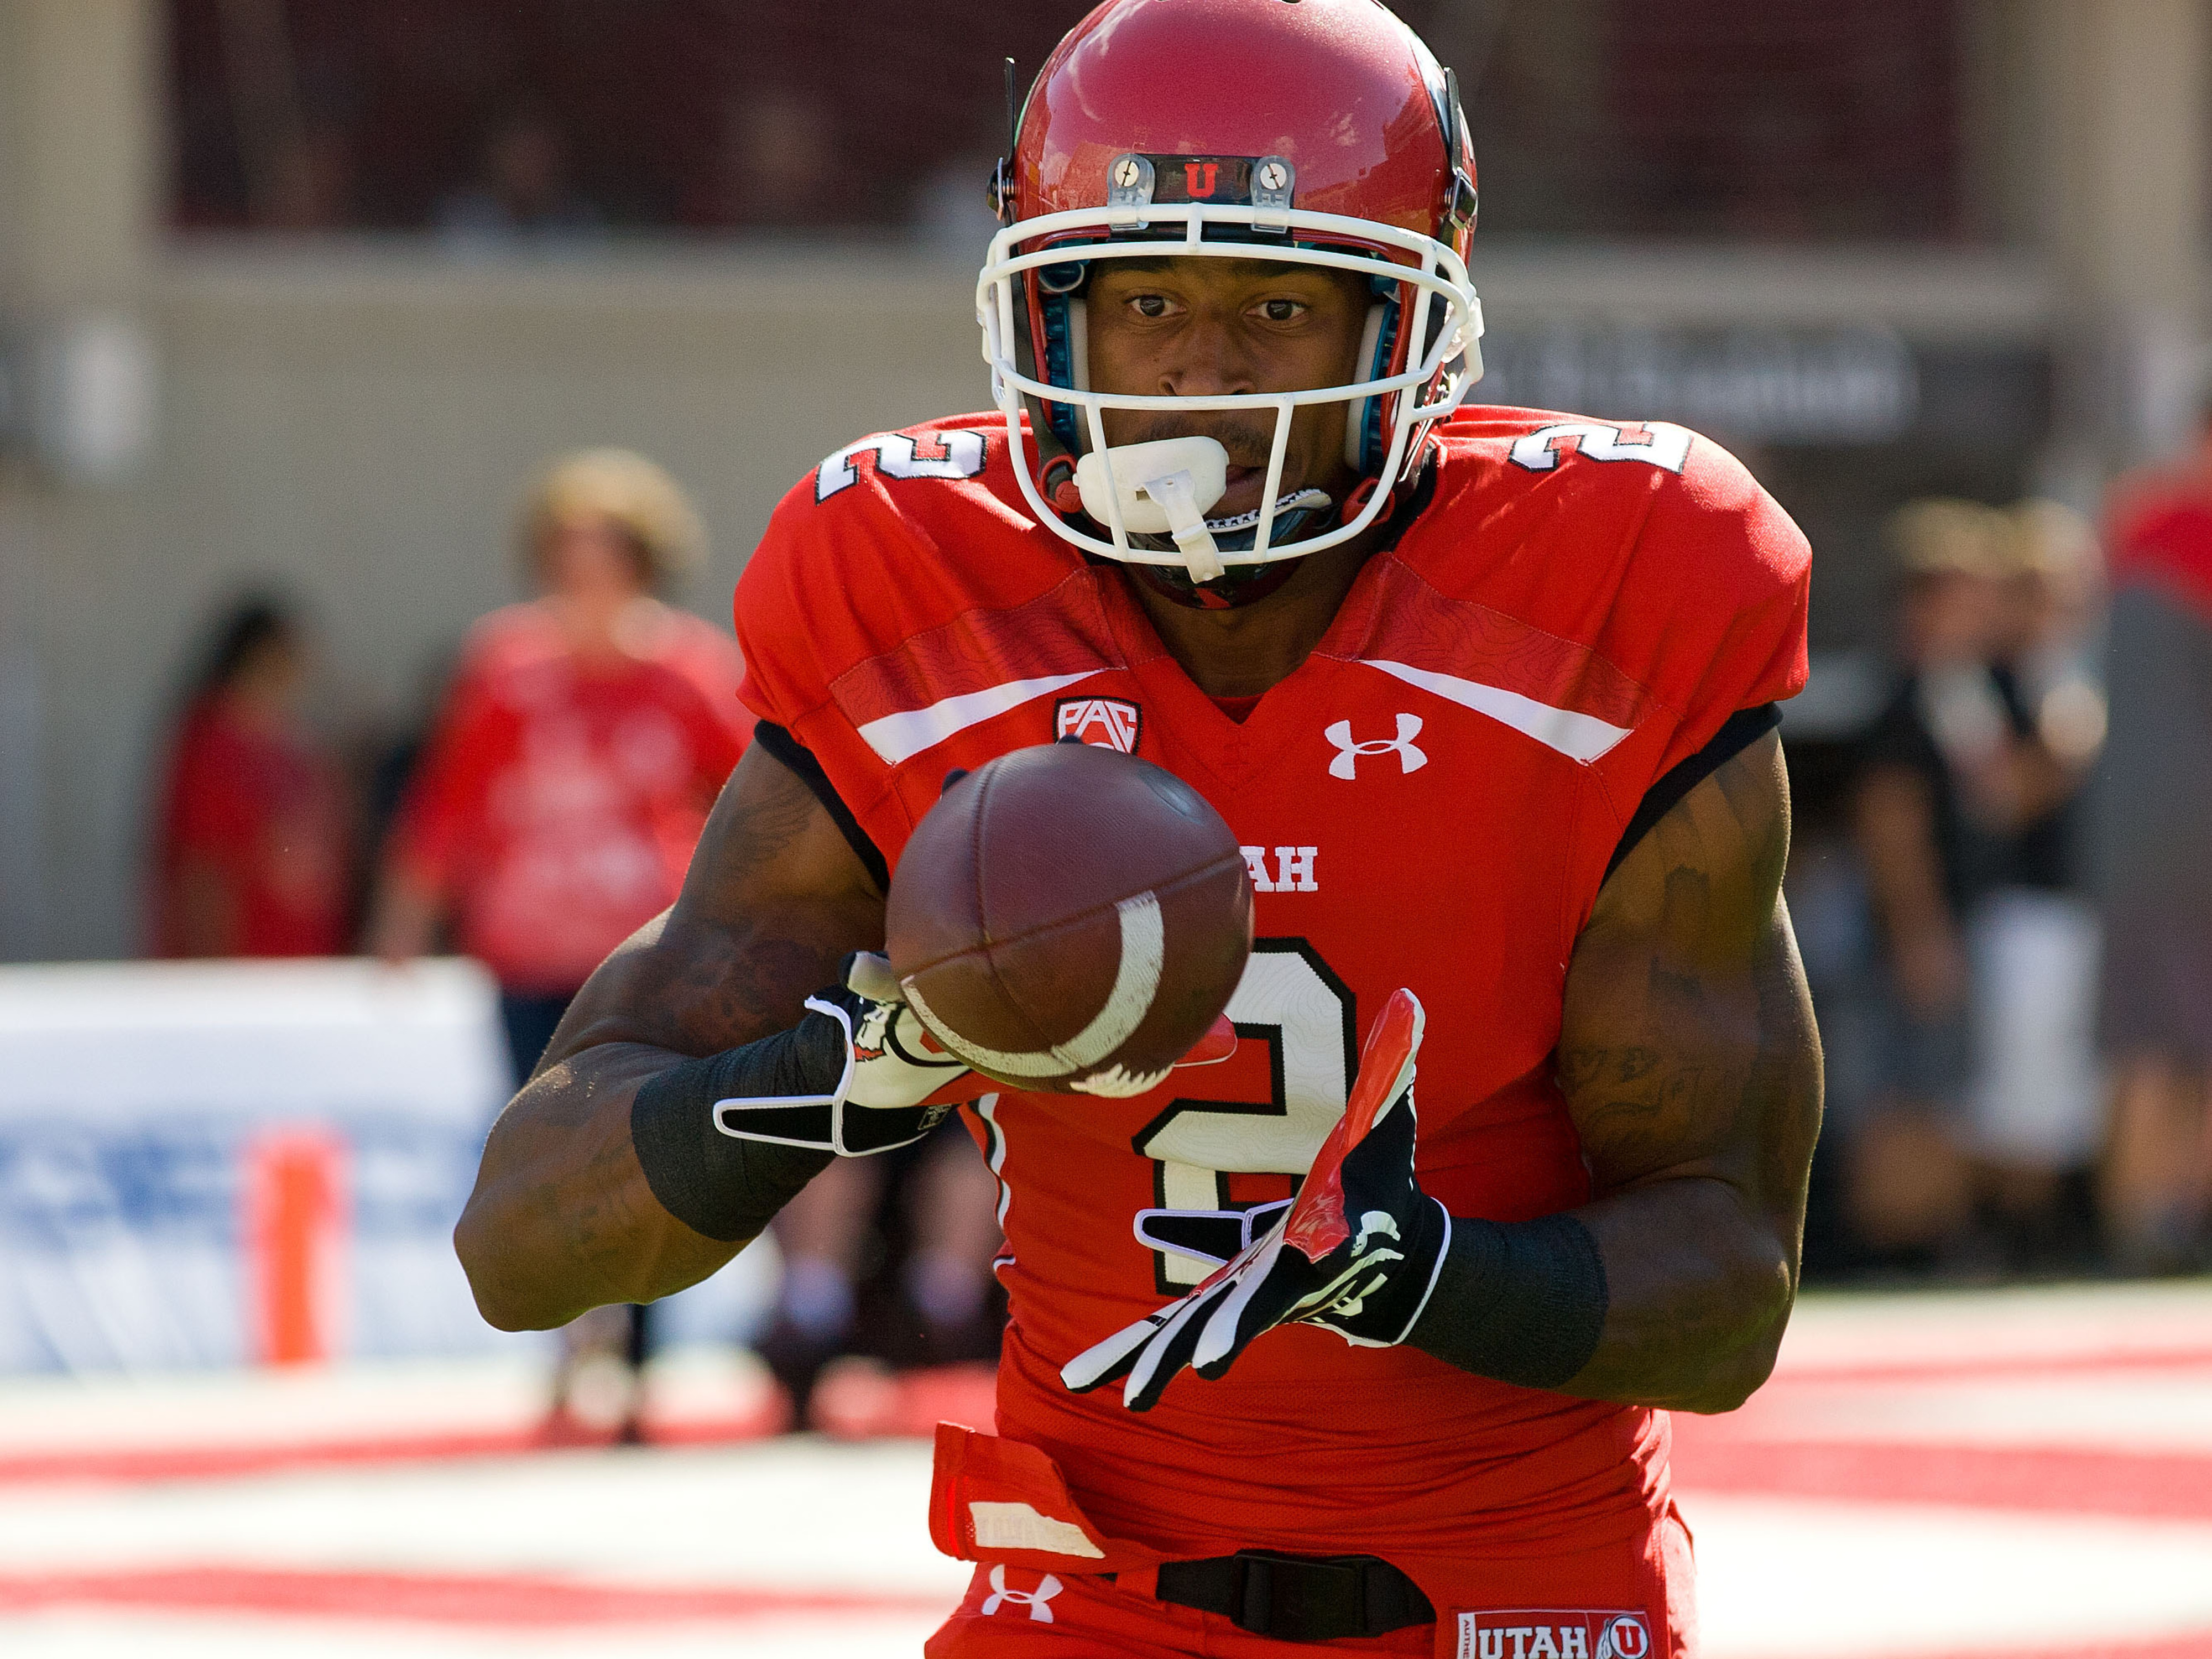 Utah wide receiver Kenneth Scott had the highlight of practice with a long pass from quarterback Travis Wilson.